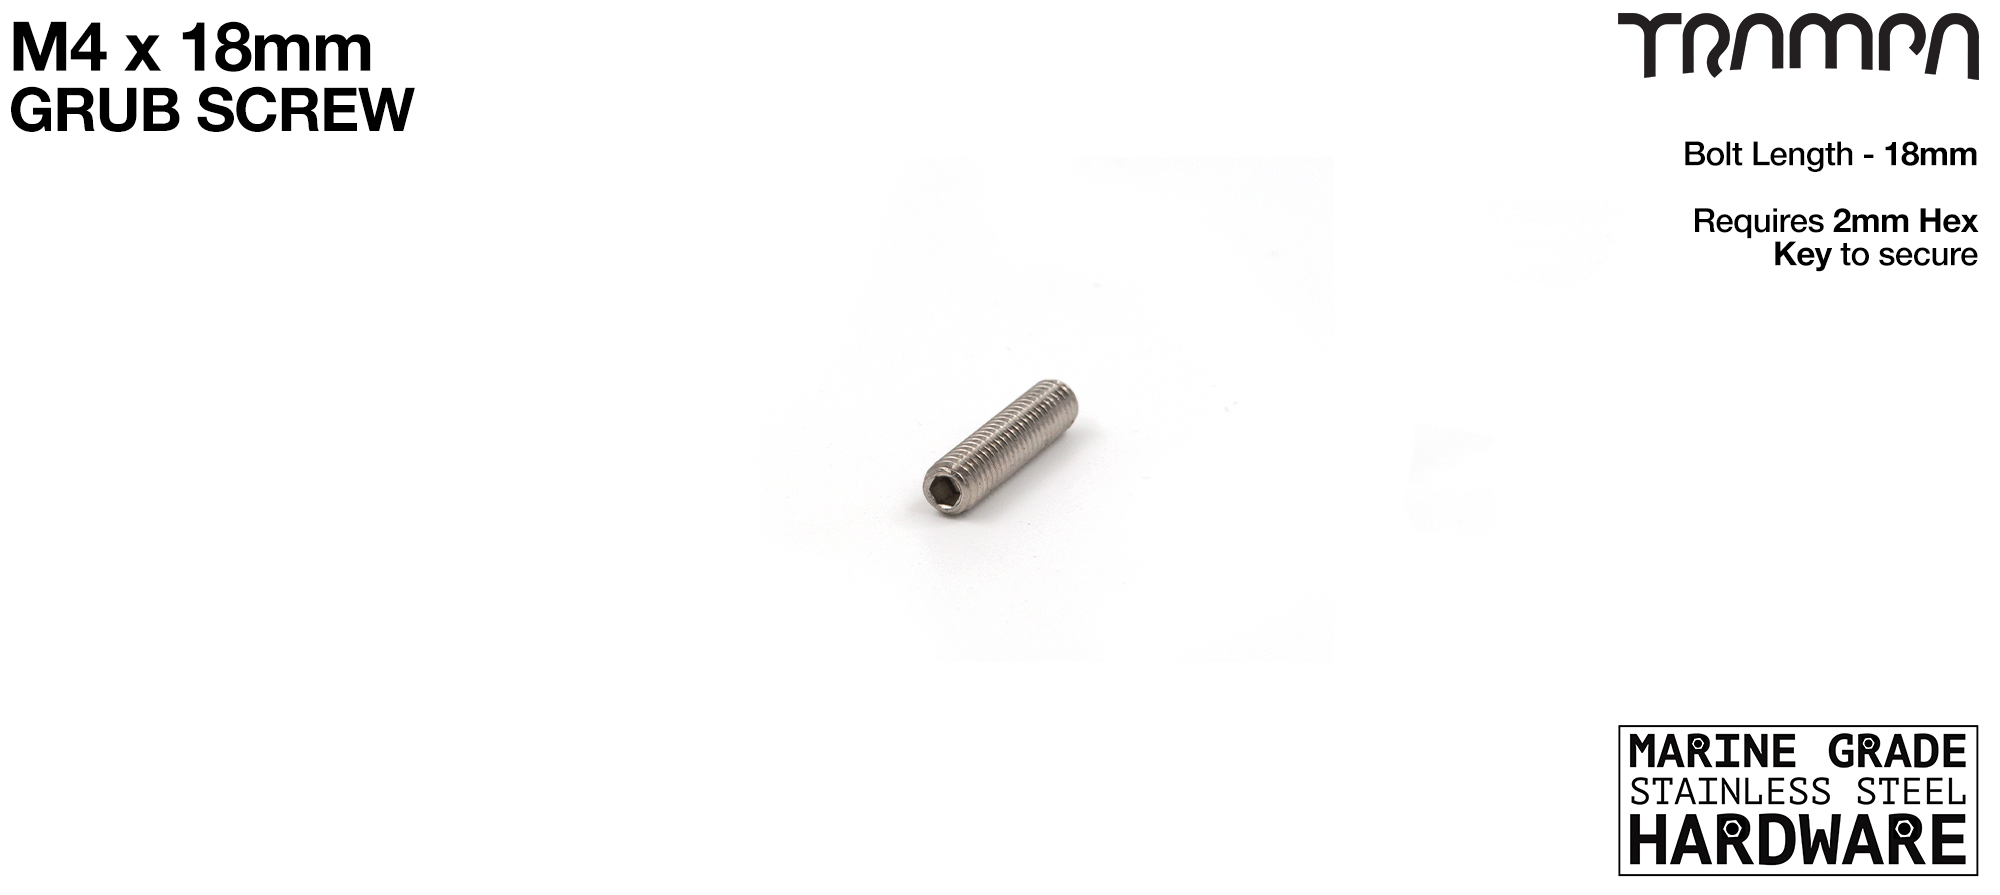 M4 x 18mm Grub Screw Marine Grade Stainless Steel - Connects to 80mm HEX Spacer